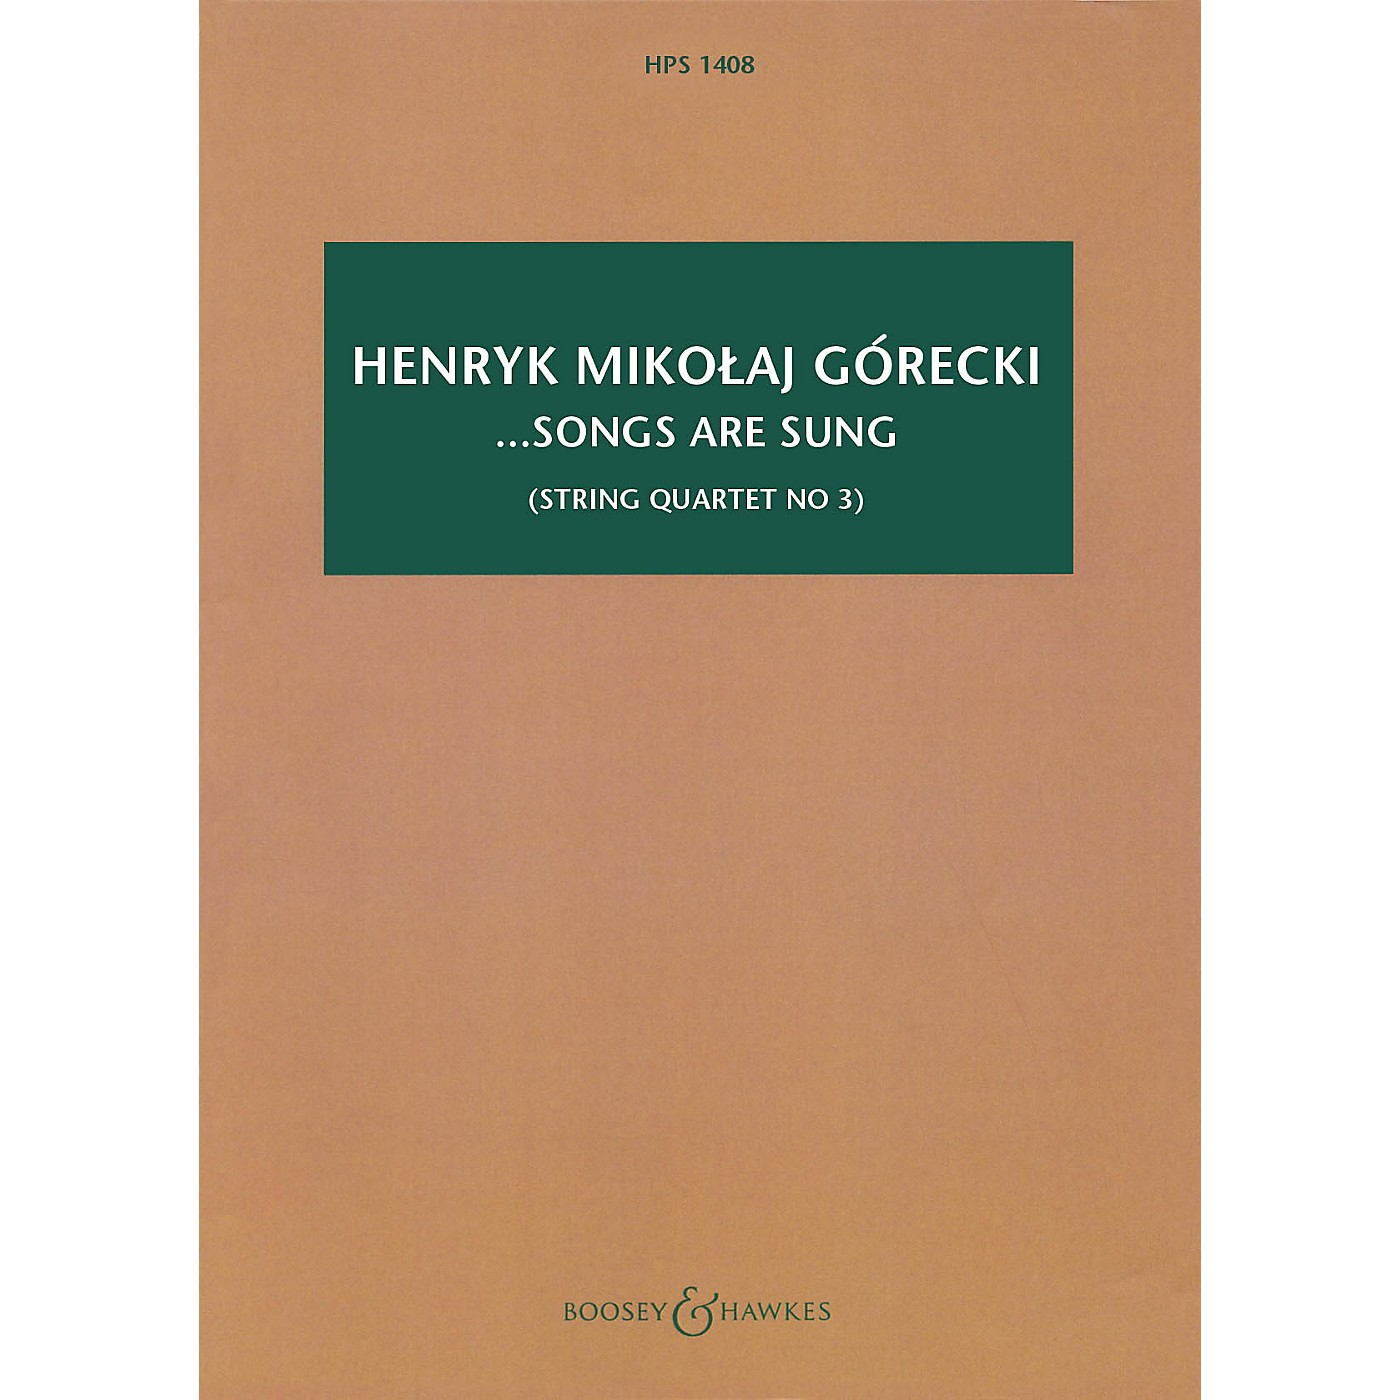 Boosey and Hawkes ...songs are sung, Op. 67 Boosey & Hawkes Scores/Books Series Softcover by Henryk Mikolaj Górecki thumbnail